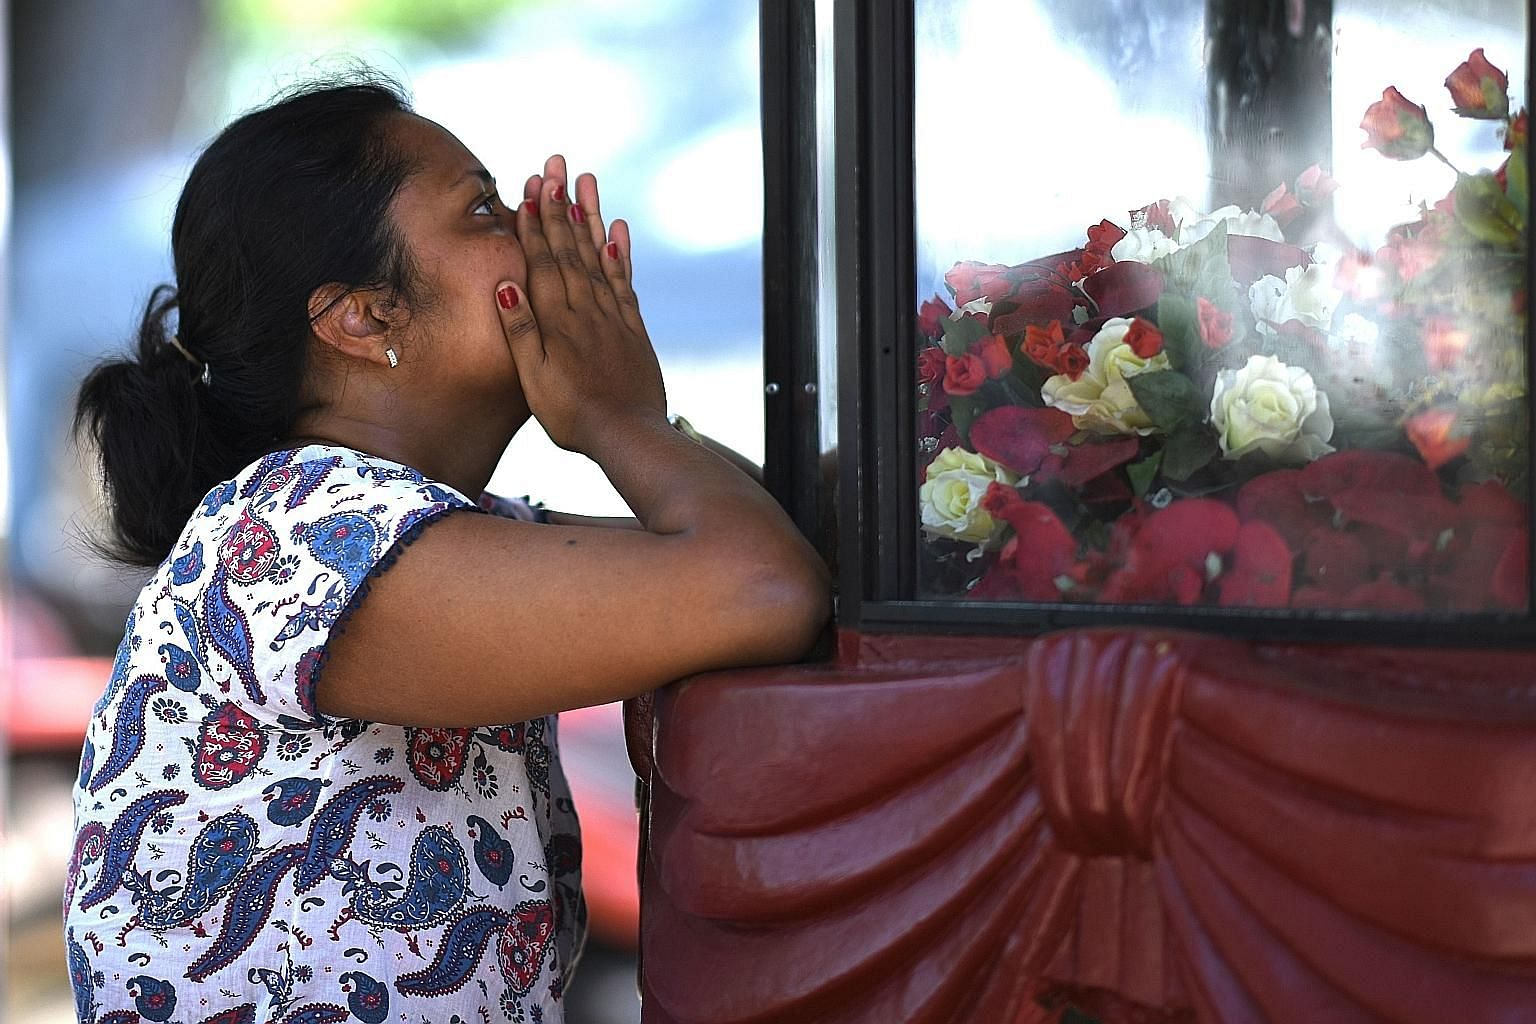 A woman praying yesterday at St Sebastian's Church, which was hit in the bomb blasts on Easter Sunday. Islamic outfit National Thowheeth Jama'ath has been fingered as a possible suspect in the attacks.